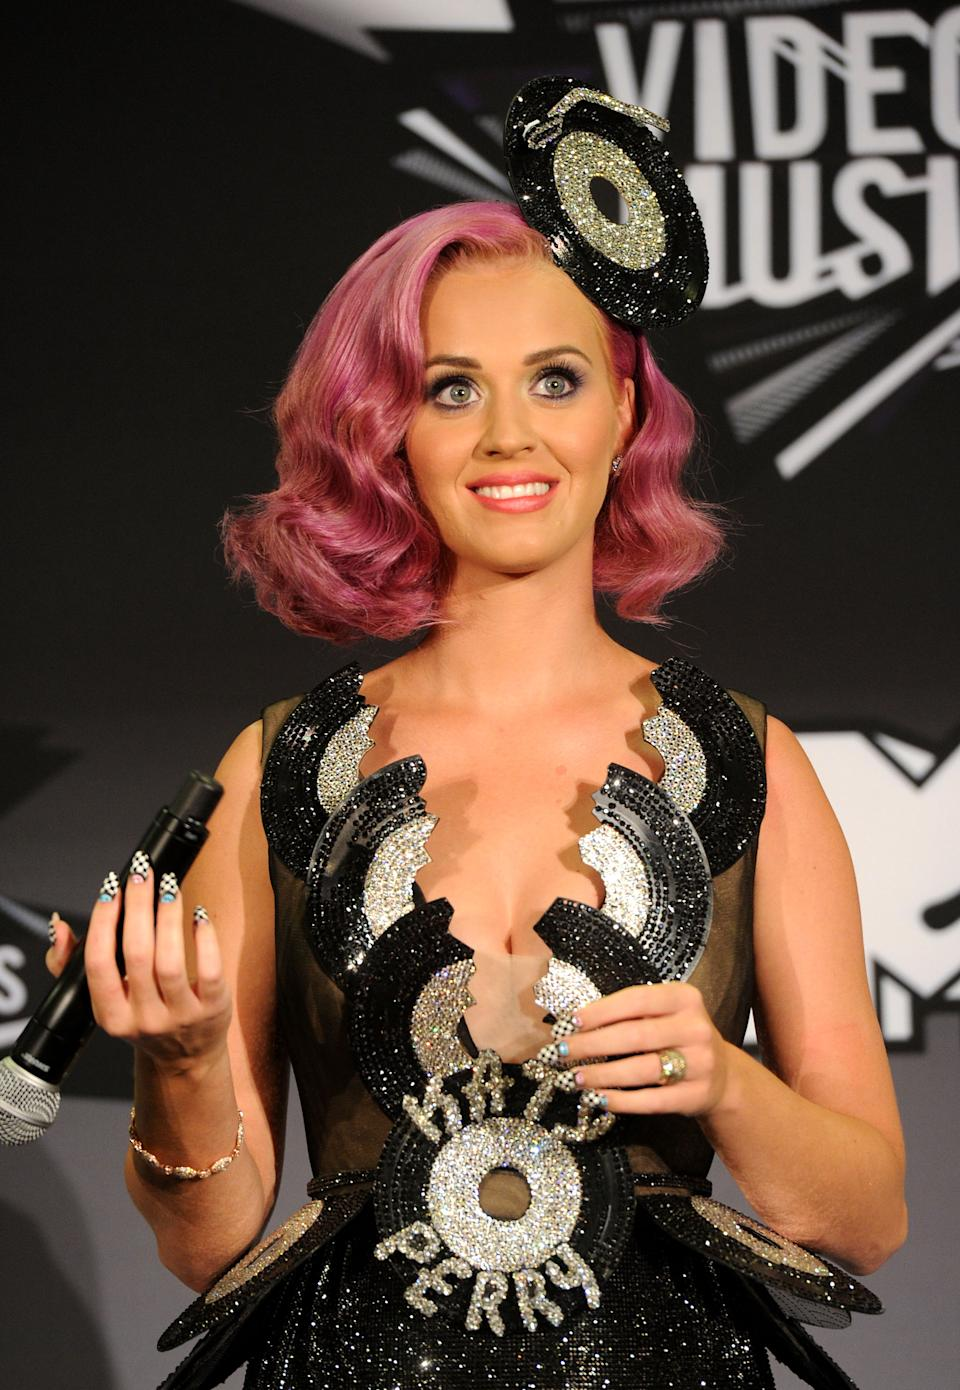 """LOS ANGELES, CA - AUGUST 28:  Singer Katy Perry, winner of the Video of the Year Award for 'Firework"""", Best Collaboration Award (featuring Kanye West) for """"E.T."""" and Best Special Effects in a Video for """"E.T."""" poses in the press room during the 2011 MTV Video Music Awards at Nokia Theatre L.A. LIVE on August 28, 2011 in Los Angeles, California.  (Photo by Jason Merritt/Getty Images)"""